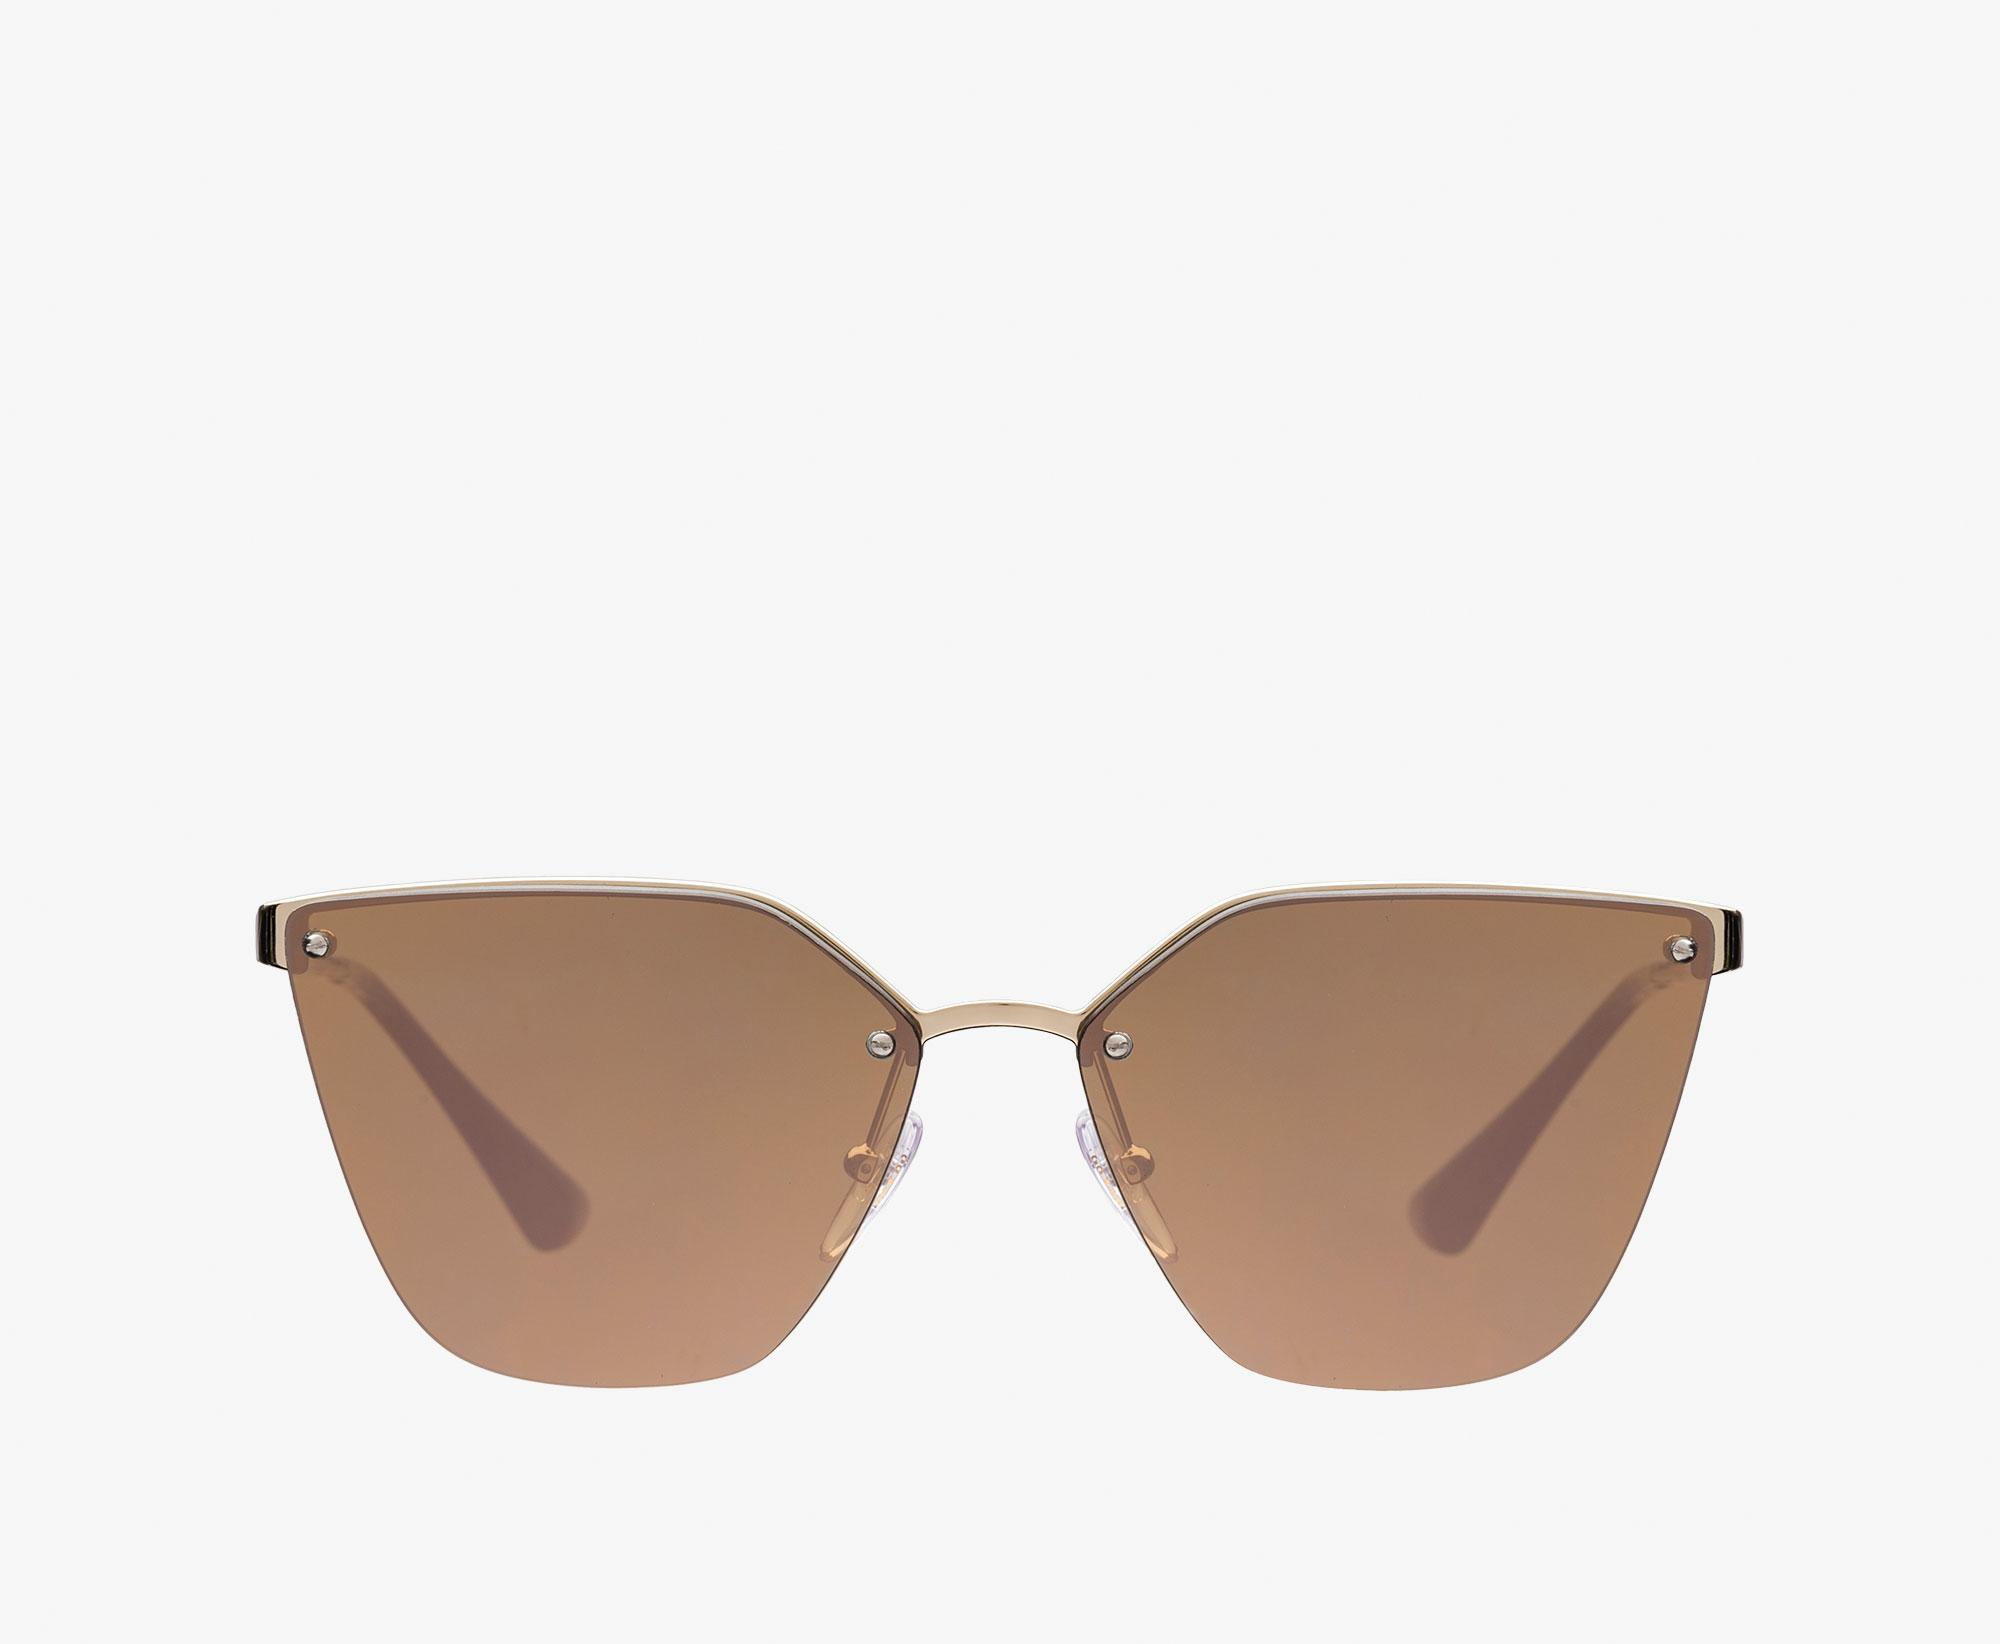 prada cinema sunglasses mirrored brown